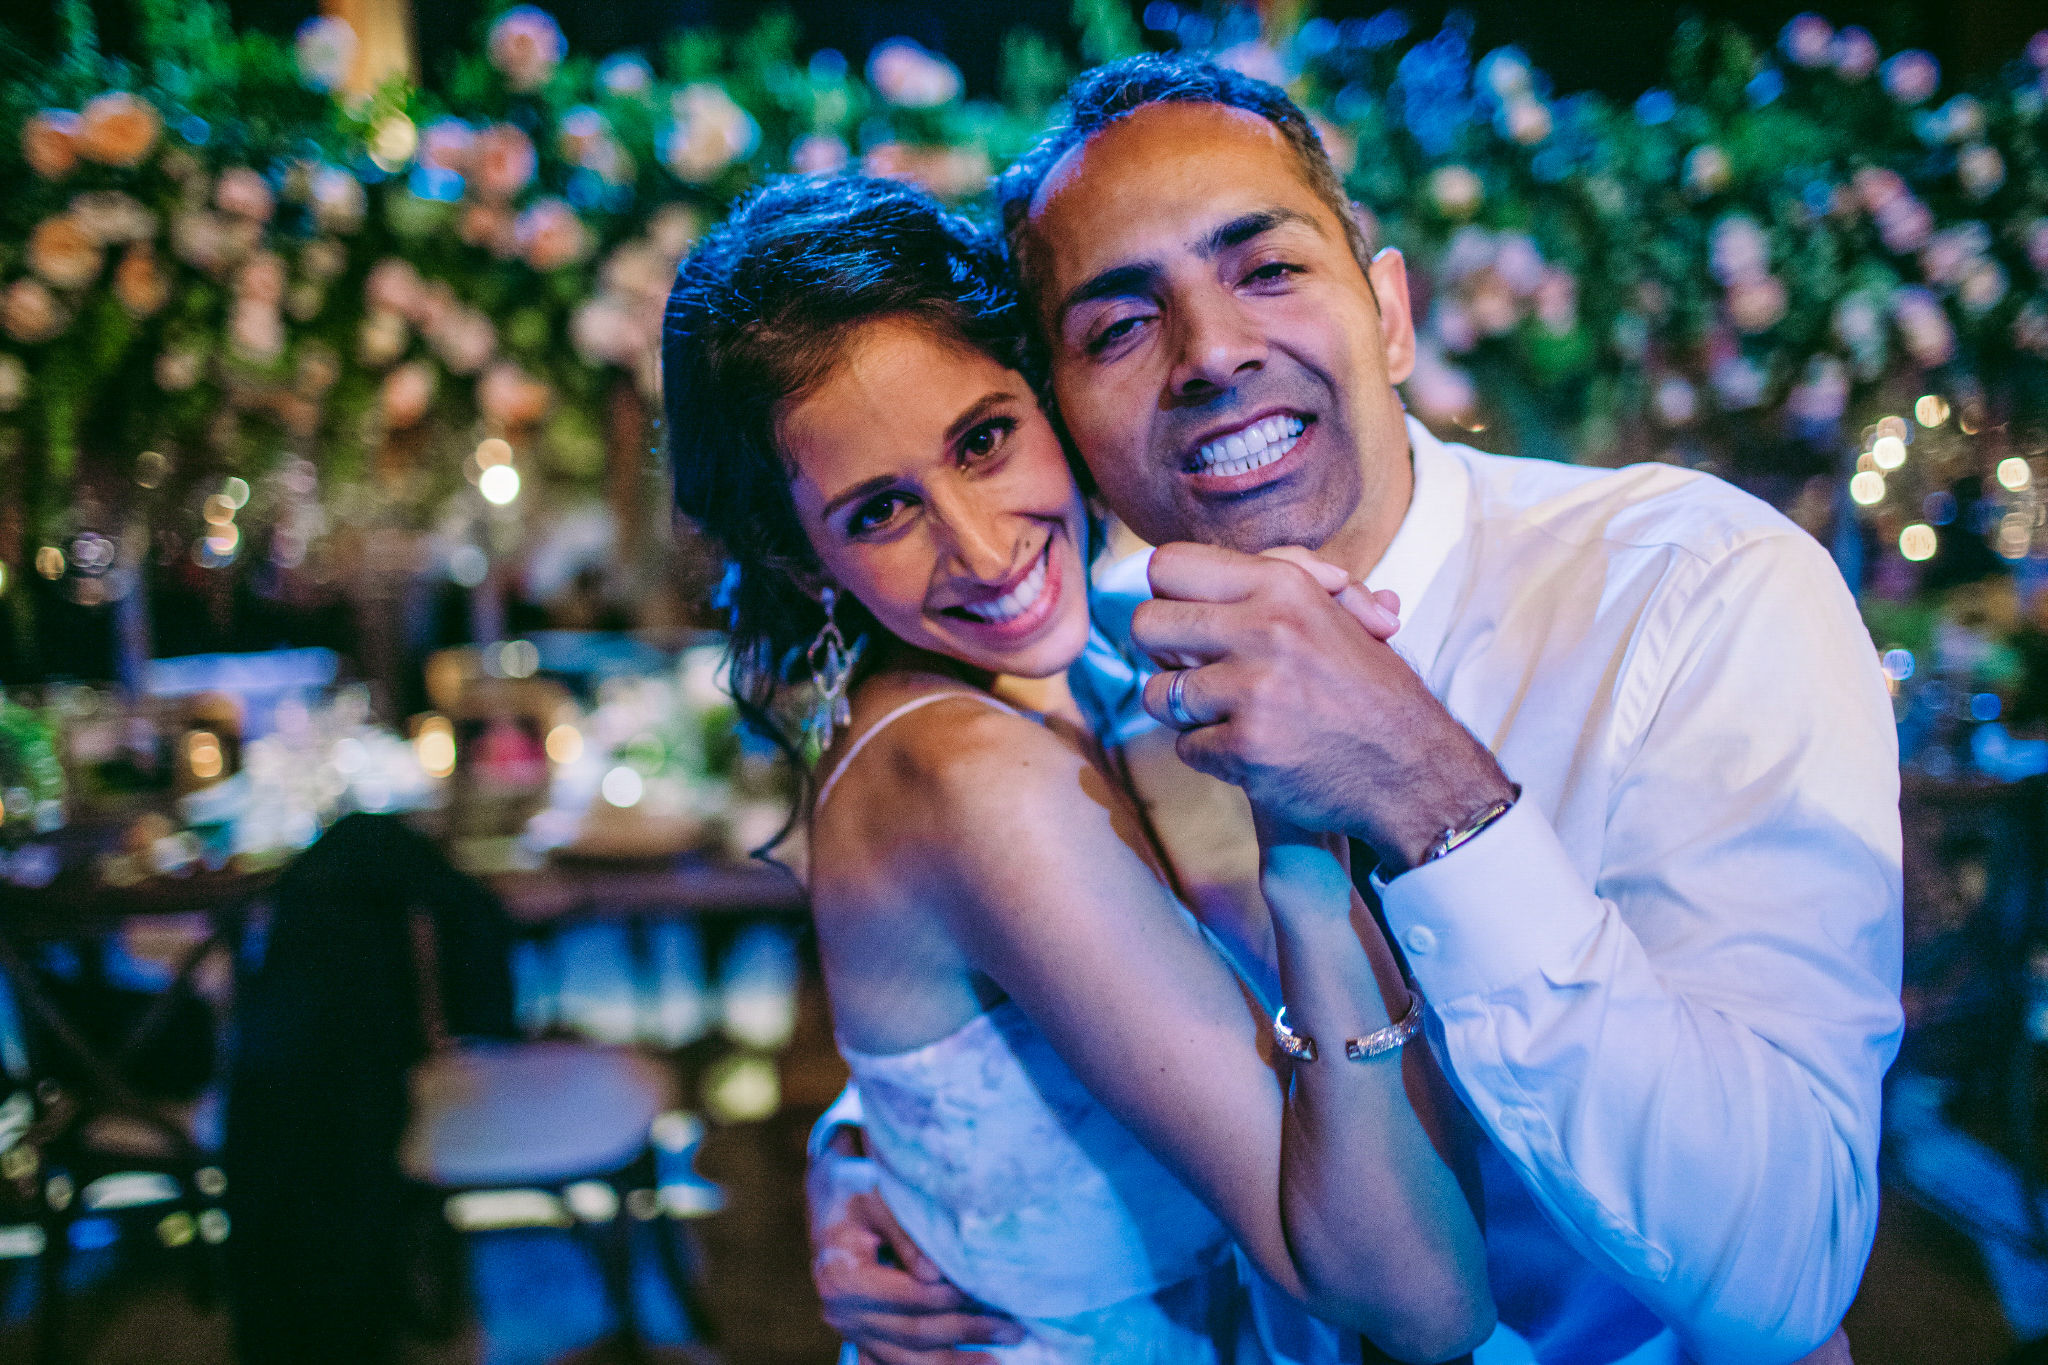 san diego wedding   photographer | bride smiling and dancing with man while looking into the   camera